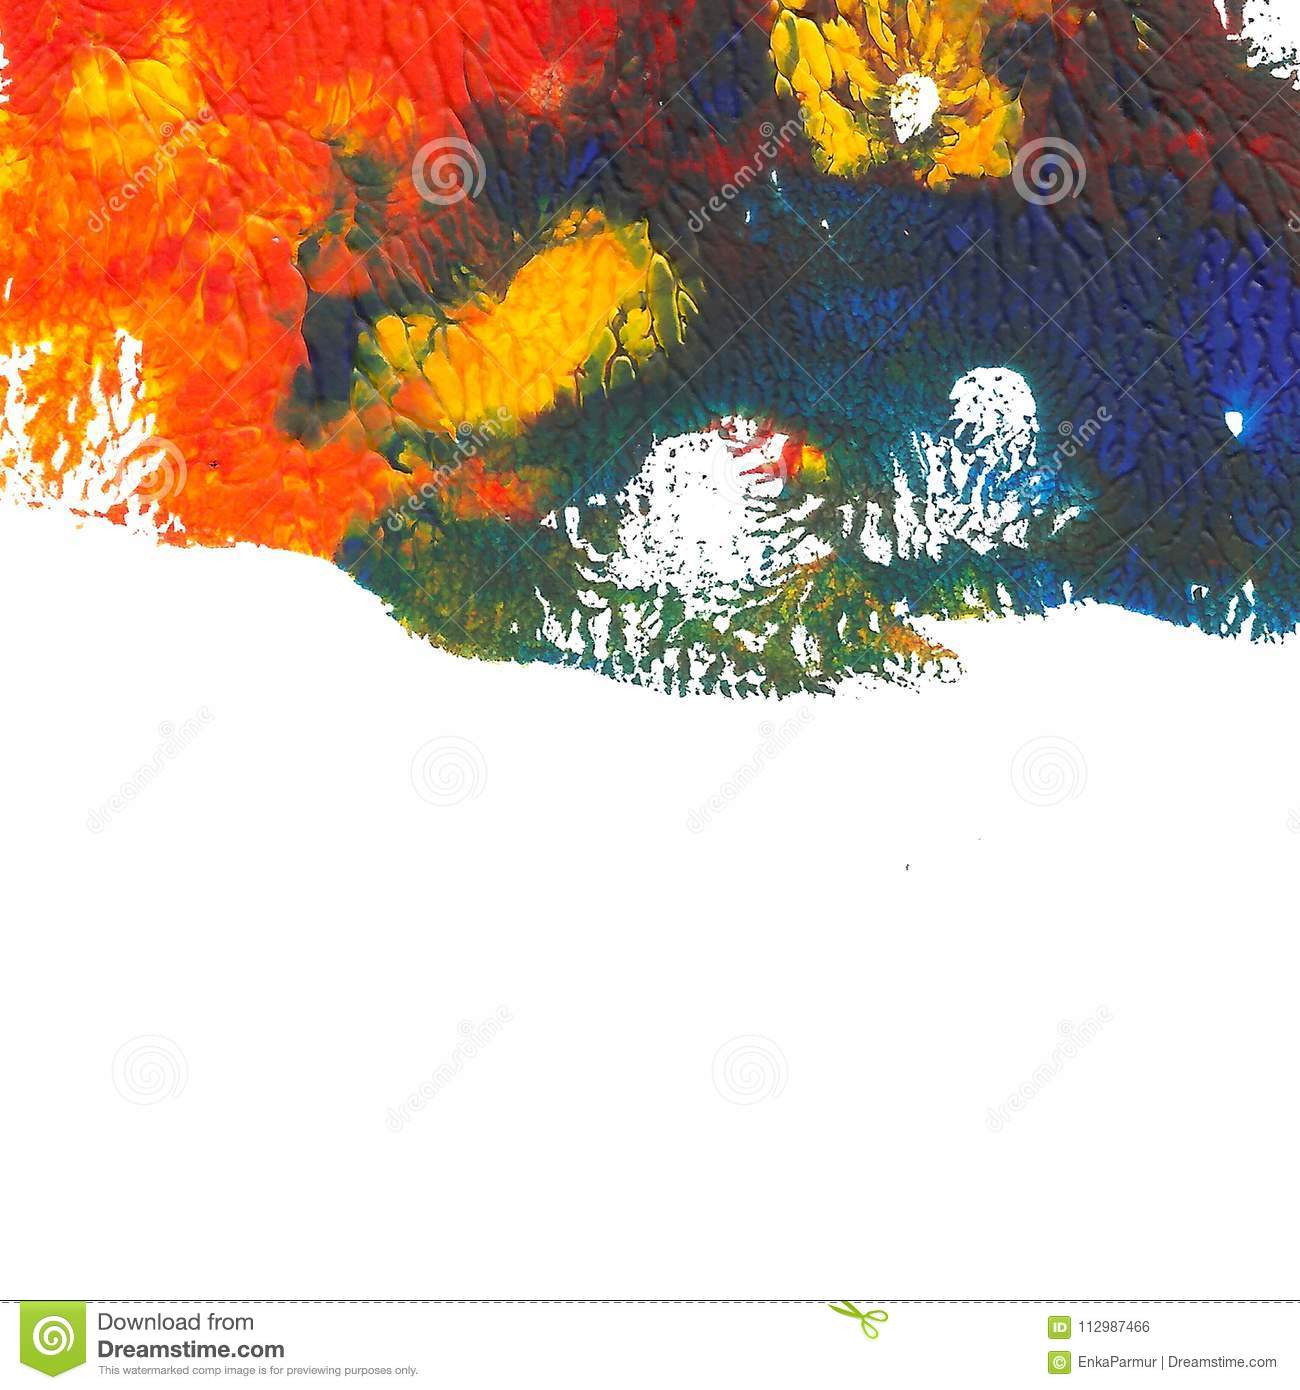 Abstract acrylic painted background. Red, orange, blue, yellow vibrant color on white.